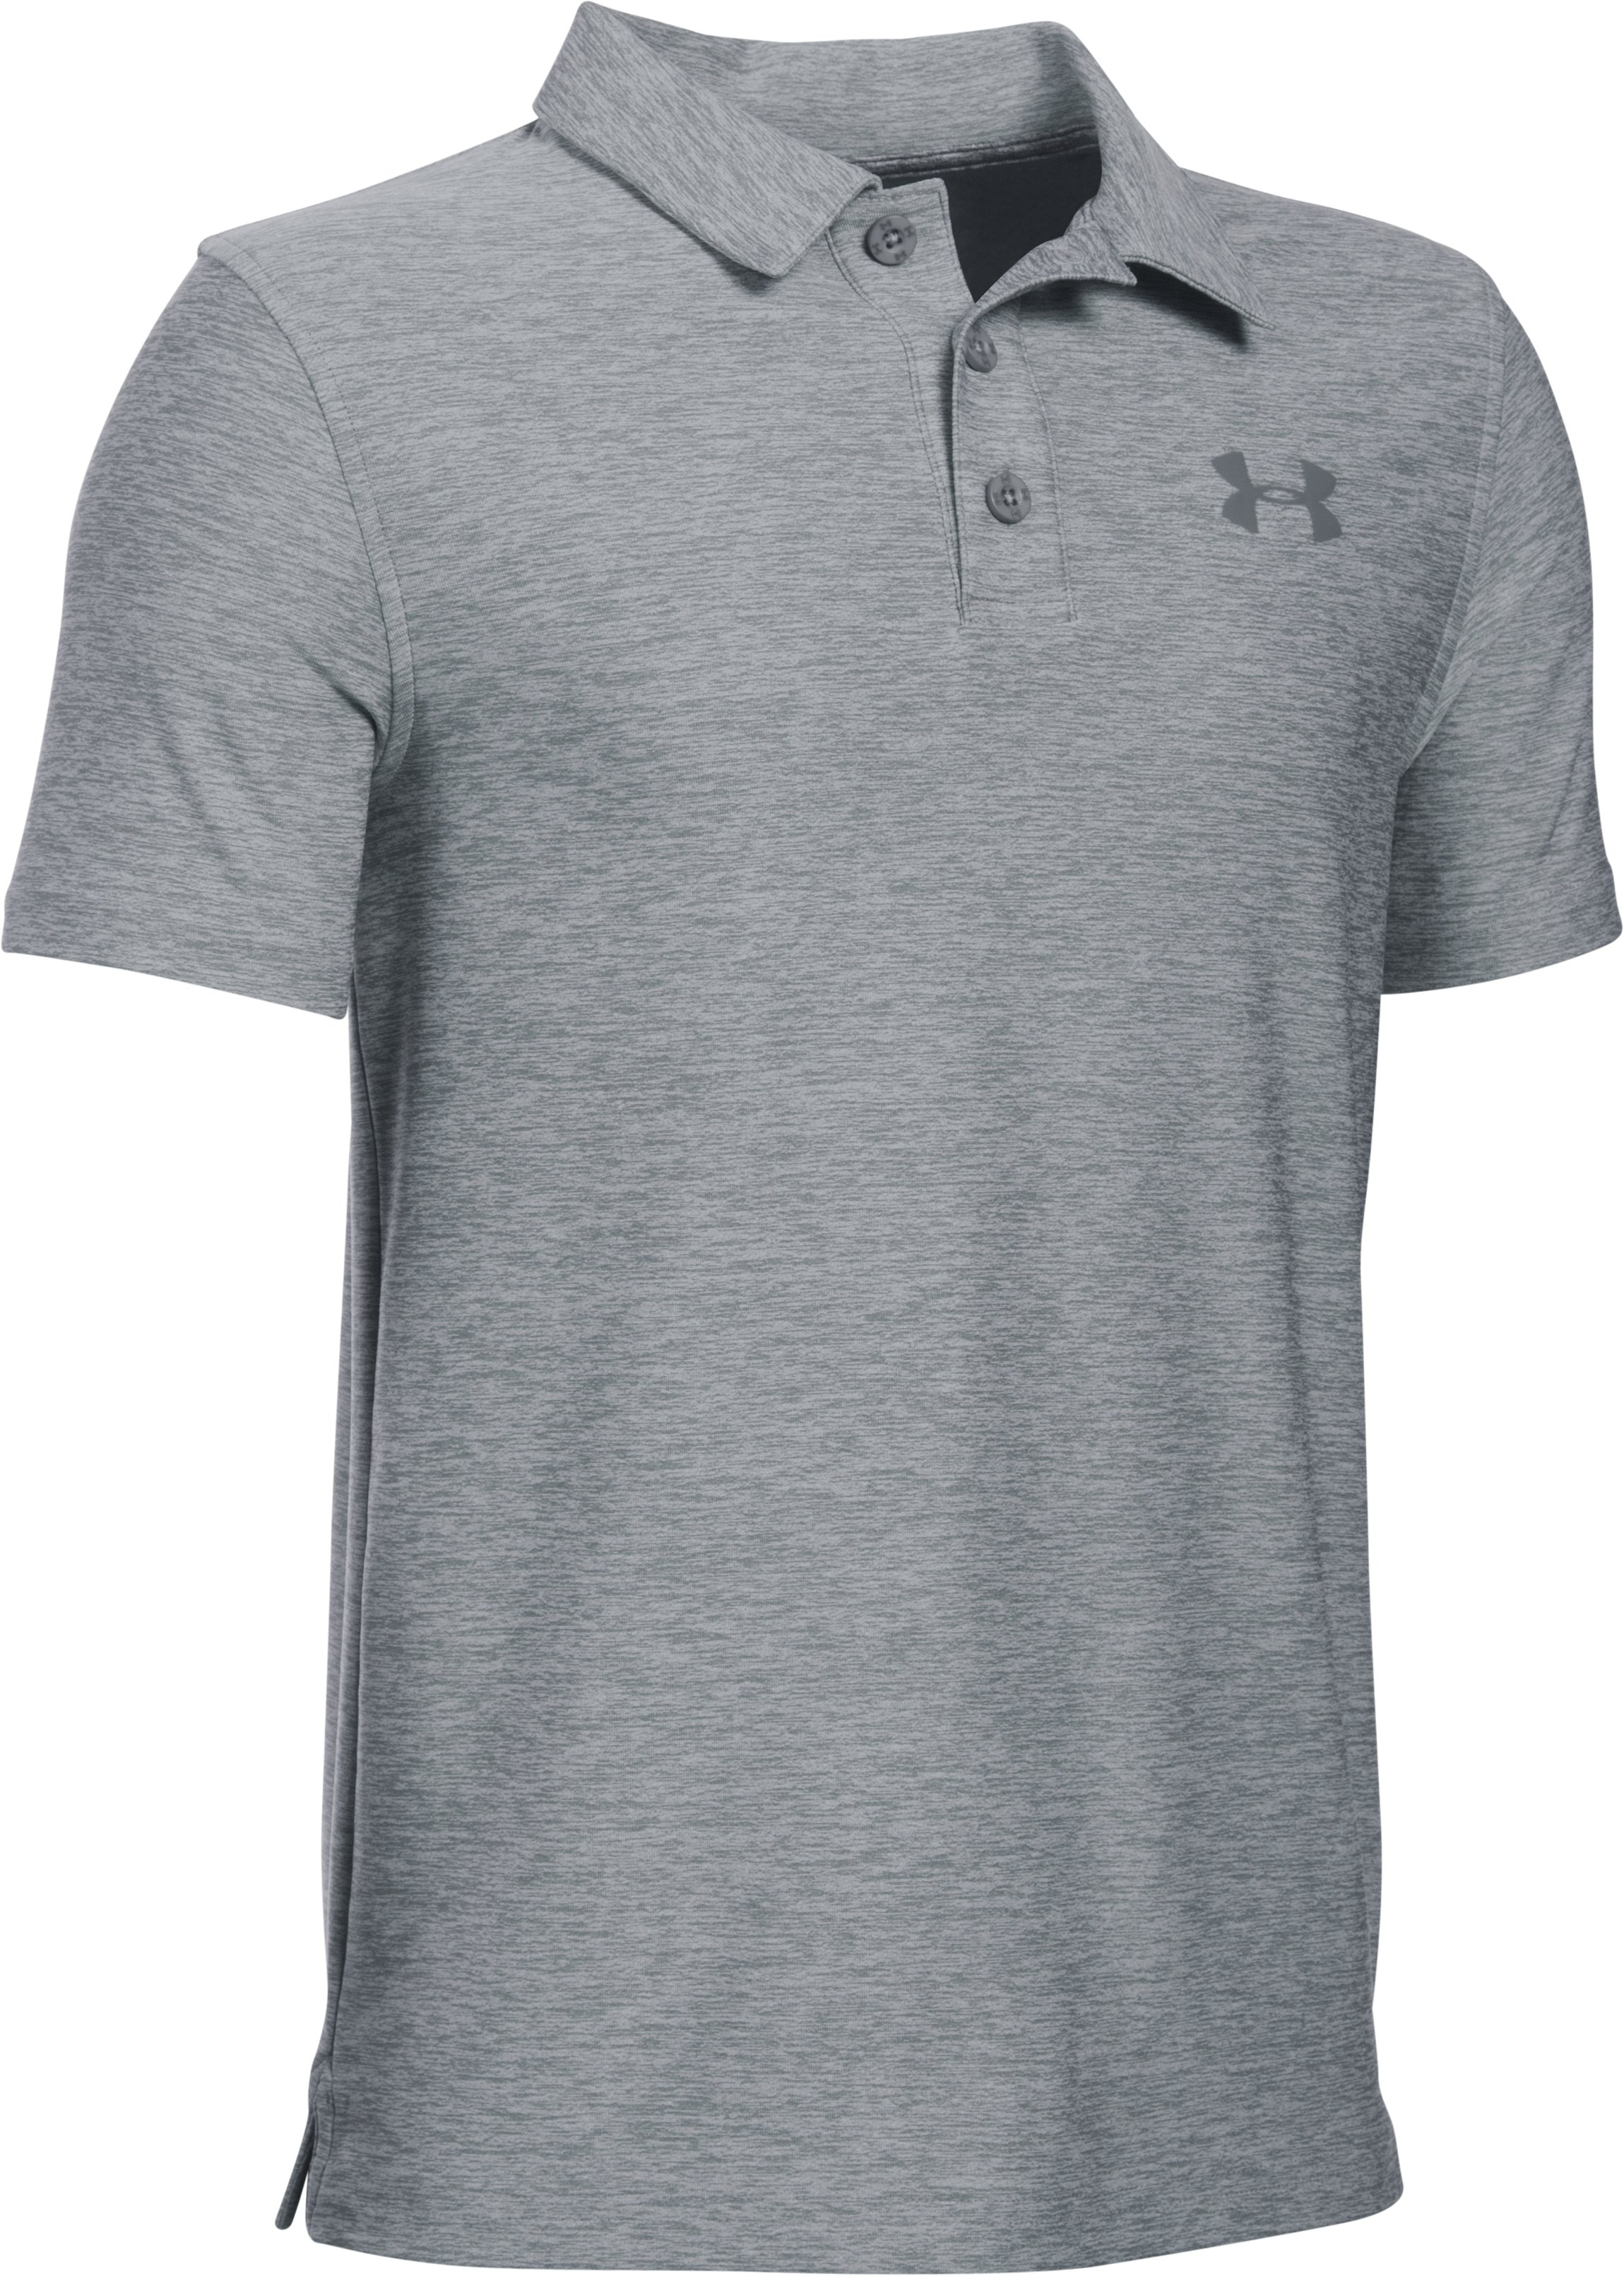 Boys' UA Playoff Polo, True Gray Heather, zoomed image